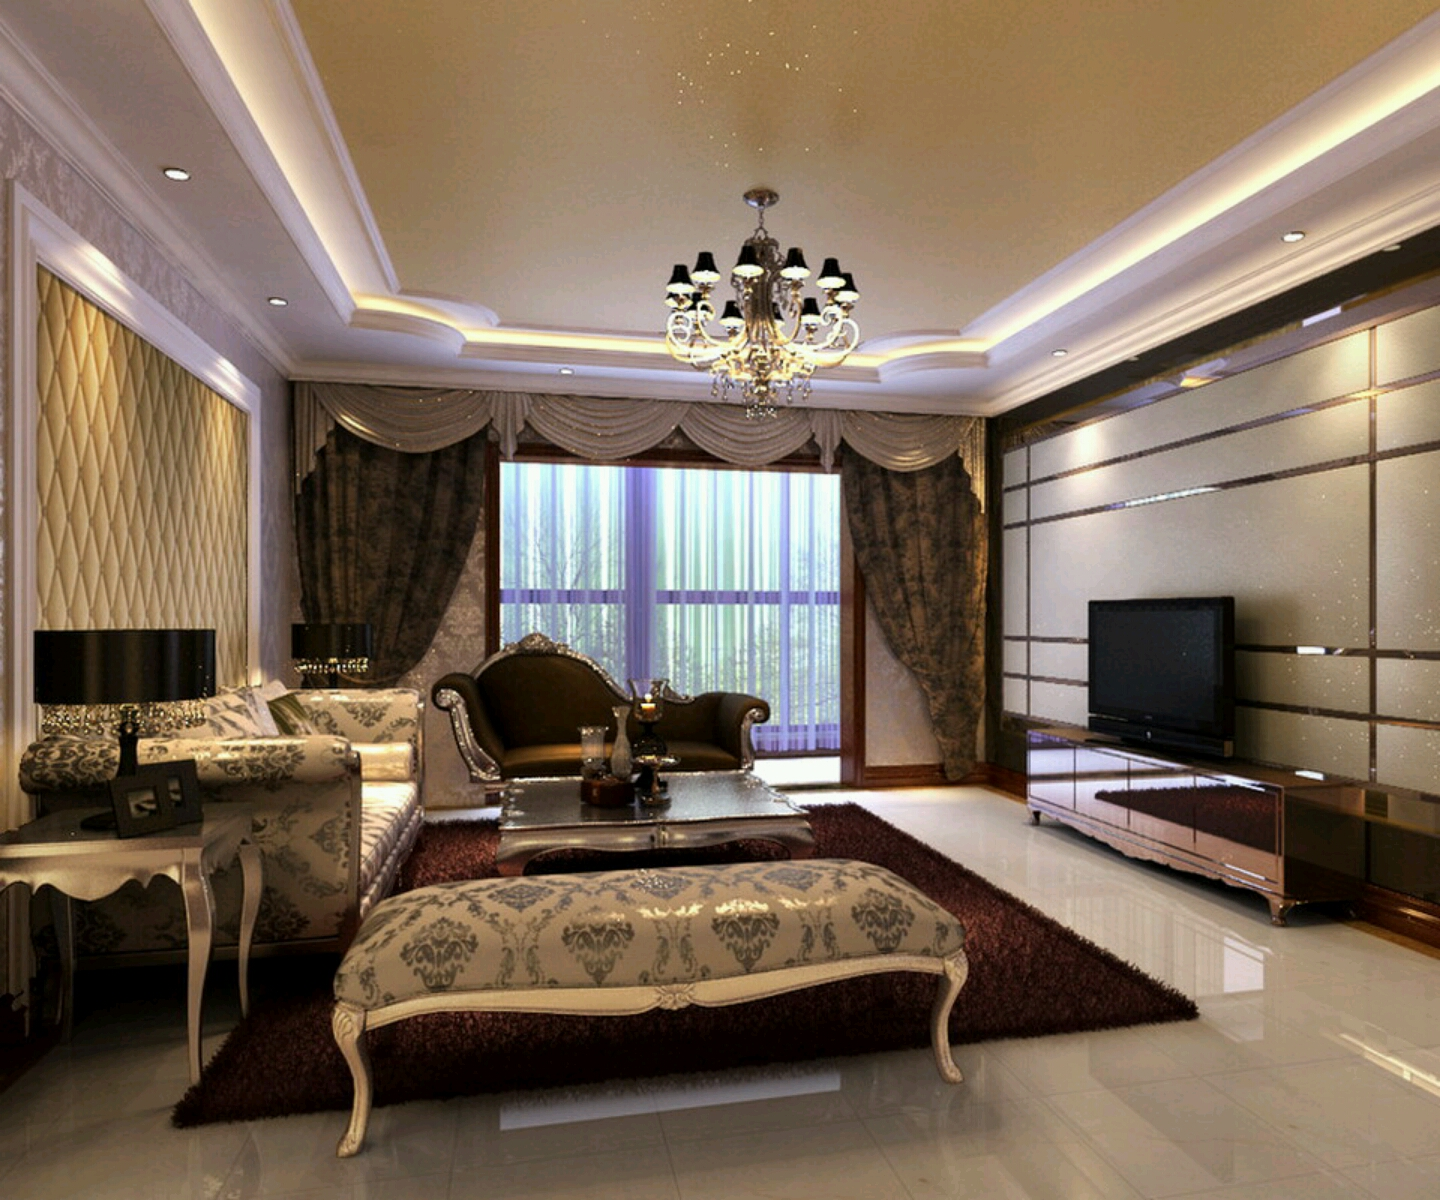 New home designs latest luxury homes interior decoration In room designs